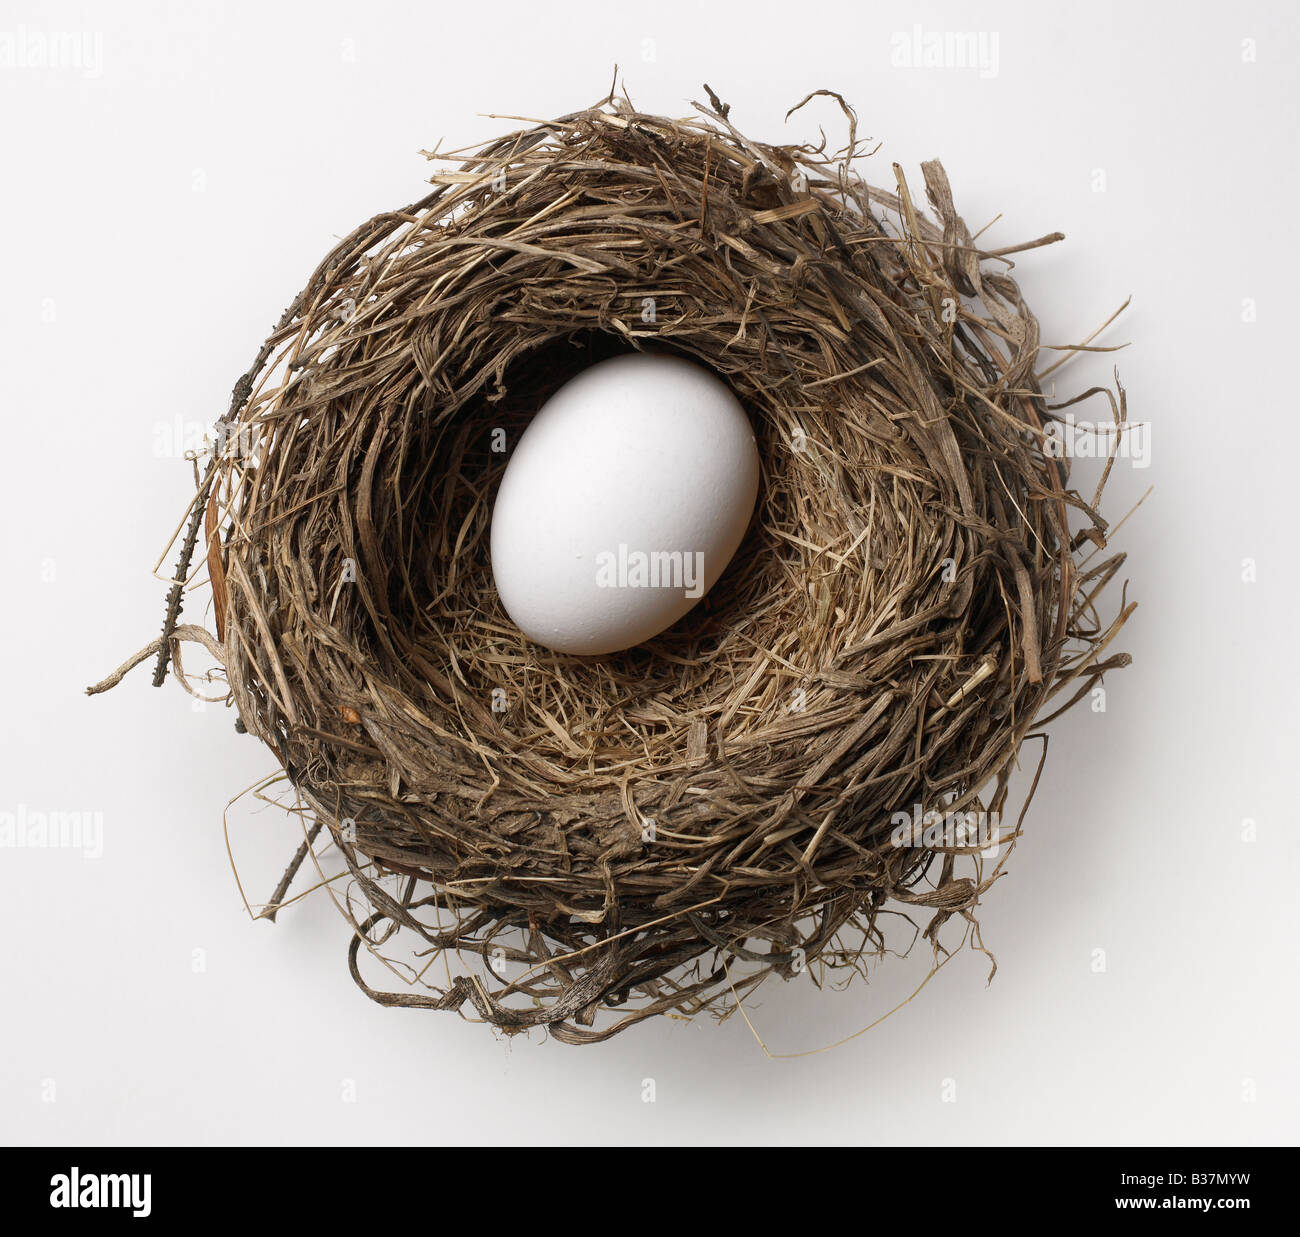 Birds nest - Stock Image